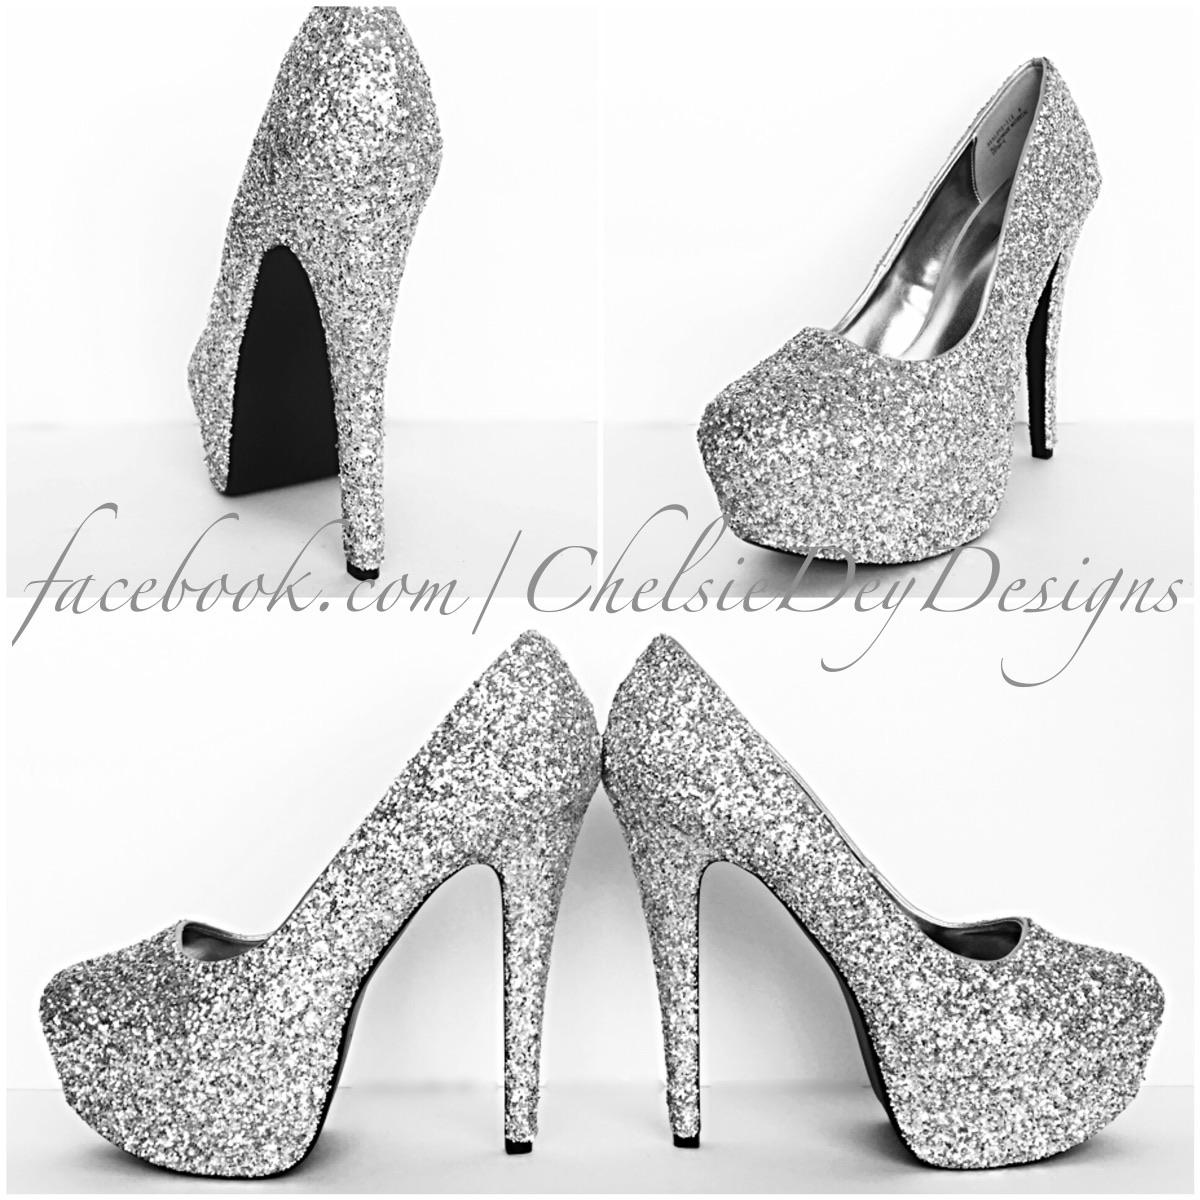 e33493c5b75 Silver Glitter High Heels, Grey Platform Pumps, Sparkly Prom Shoes